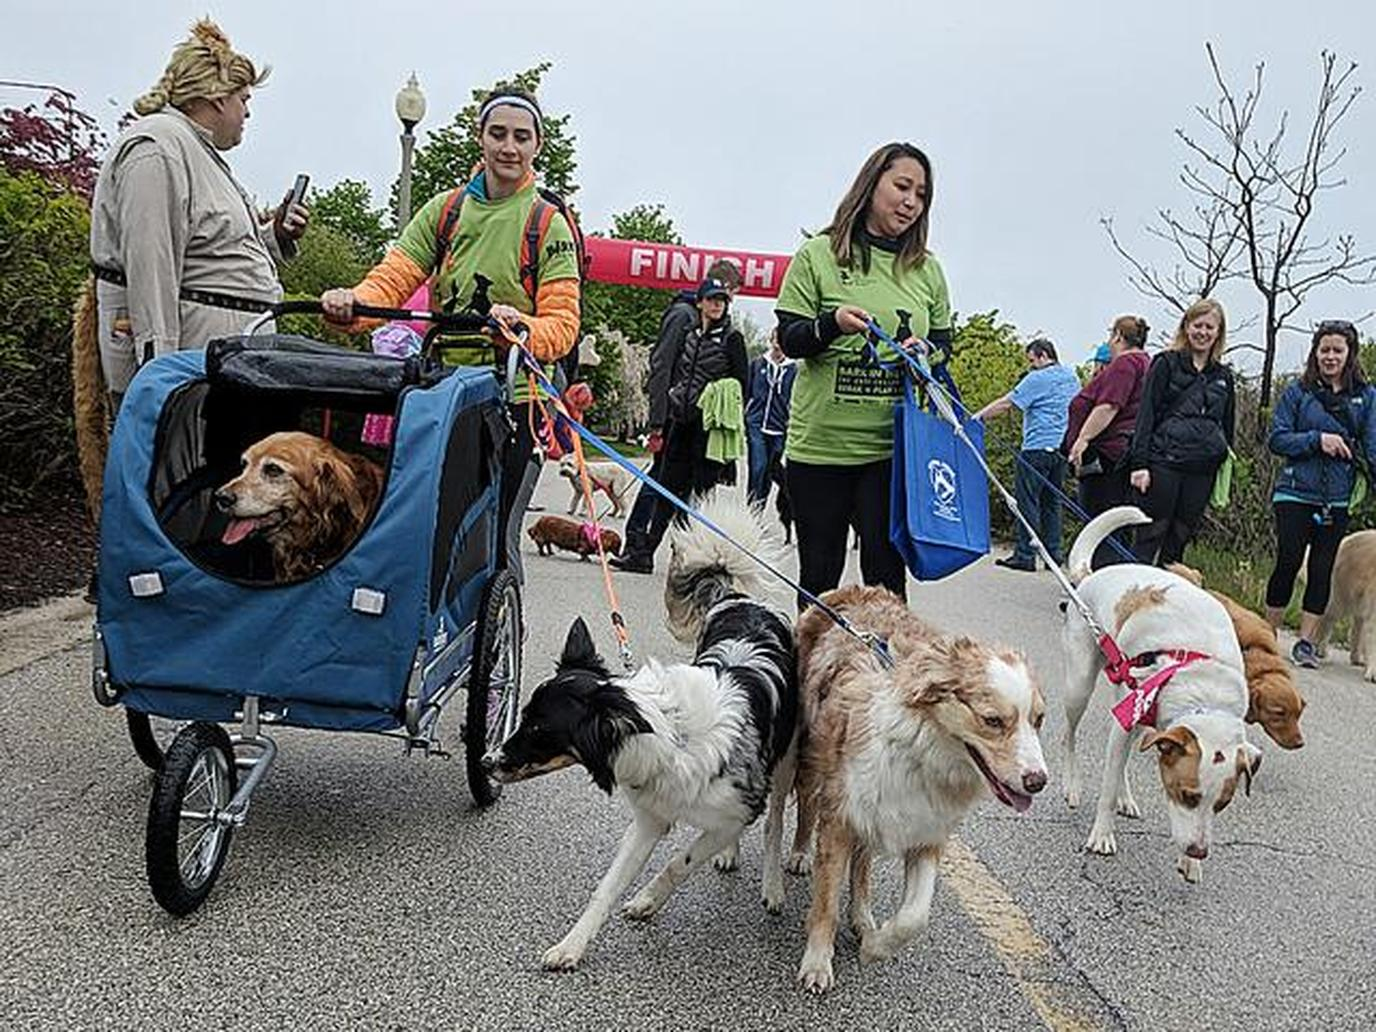 Bark in the Park is a dog-friendly event that raises funds for Anti-Cruelty Society.